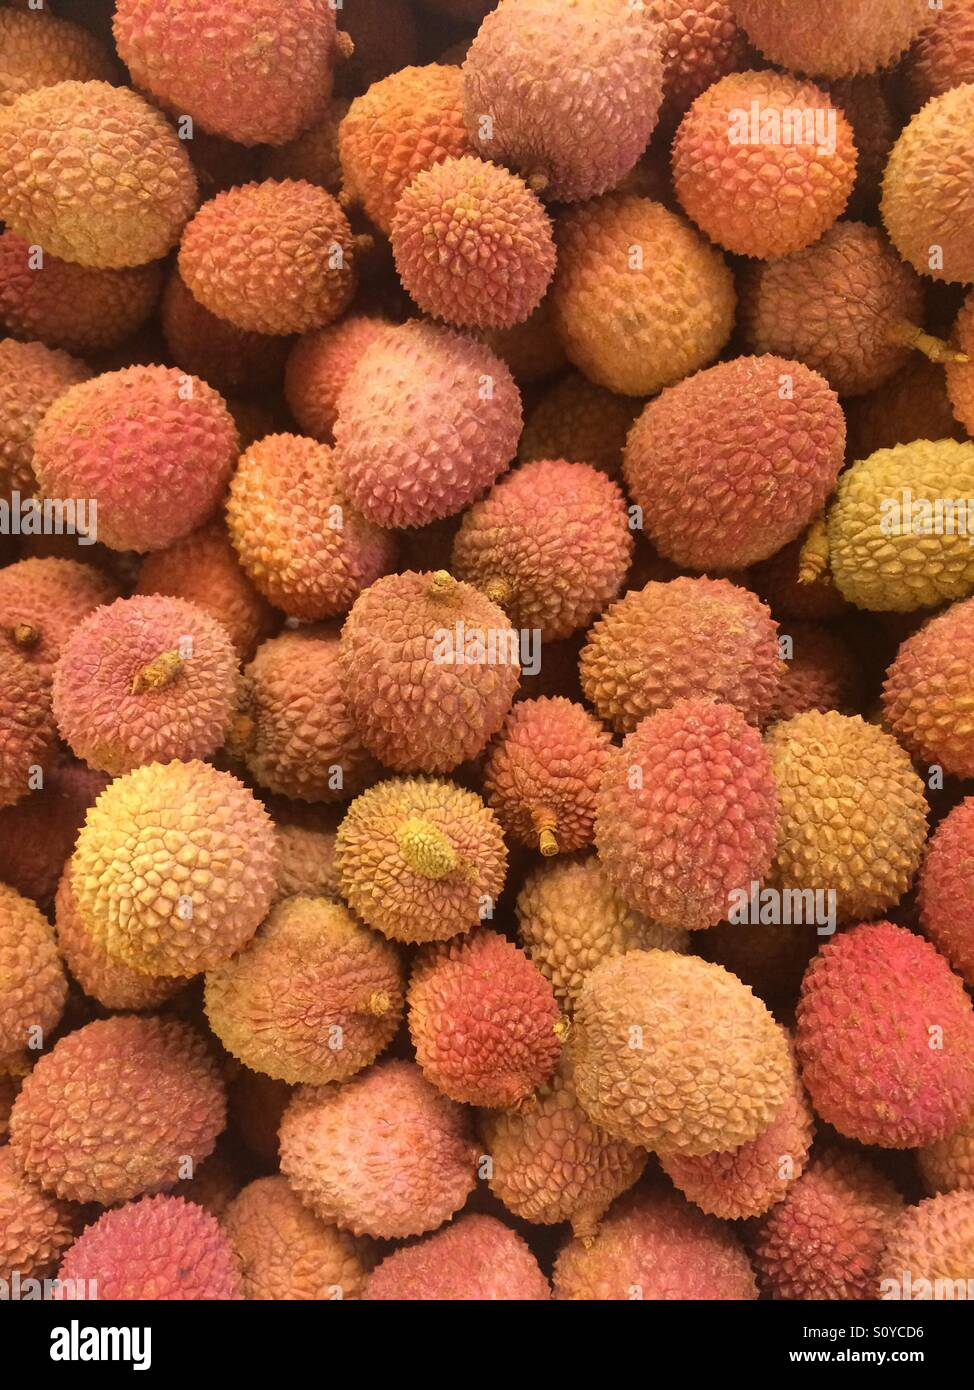 Stack of fresh lychees - Stock Image